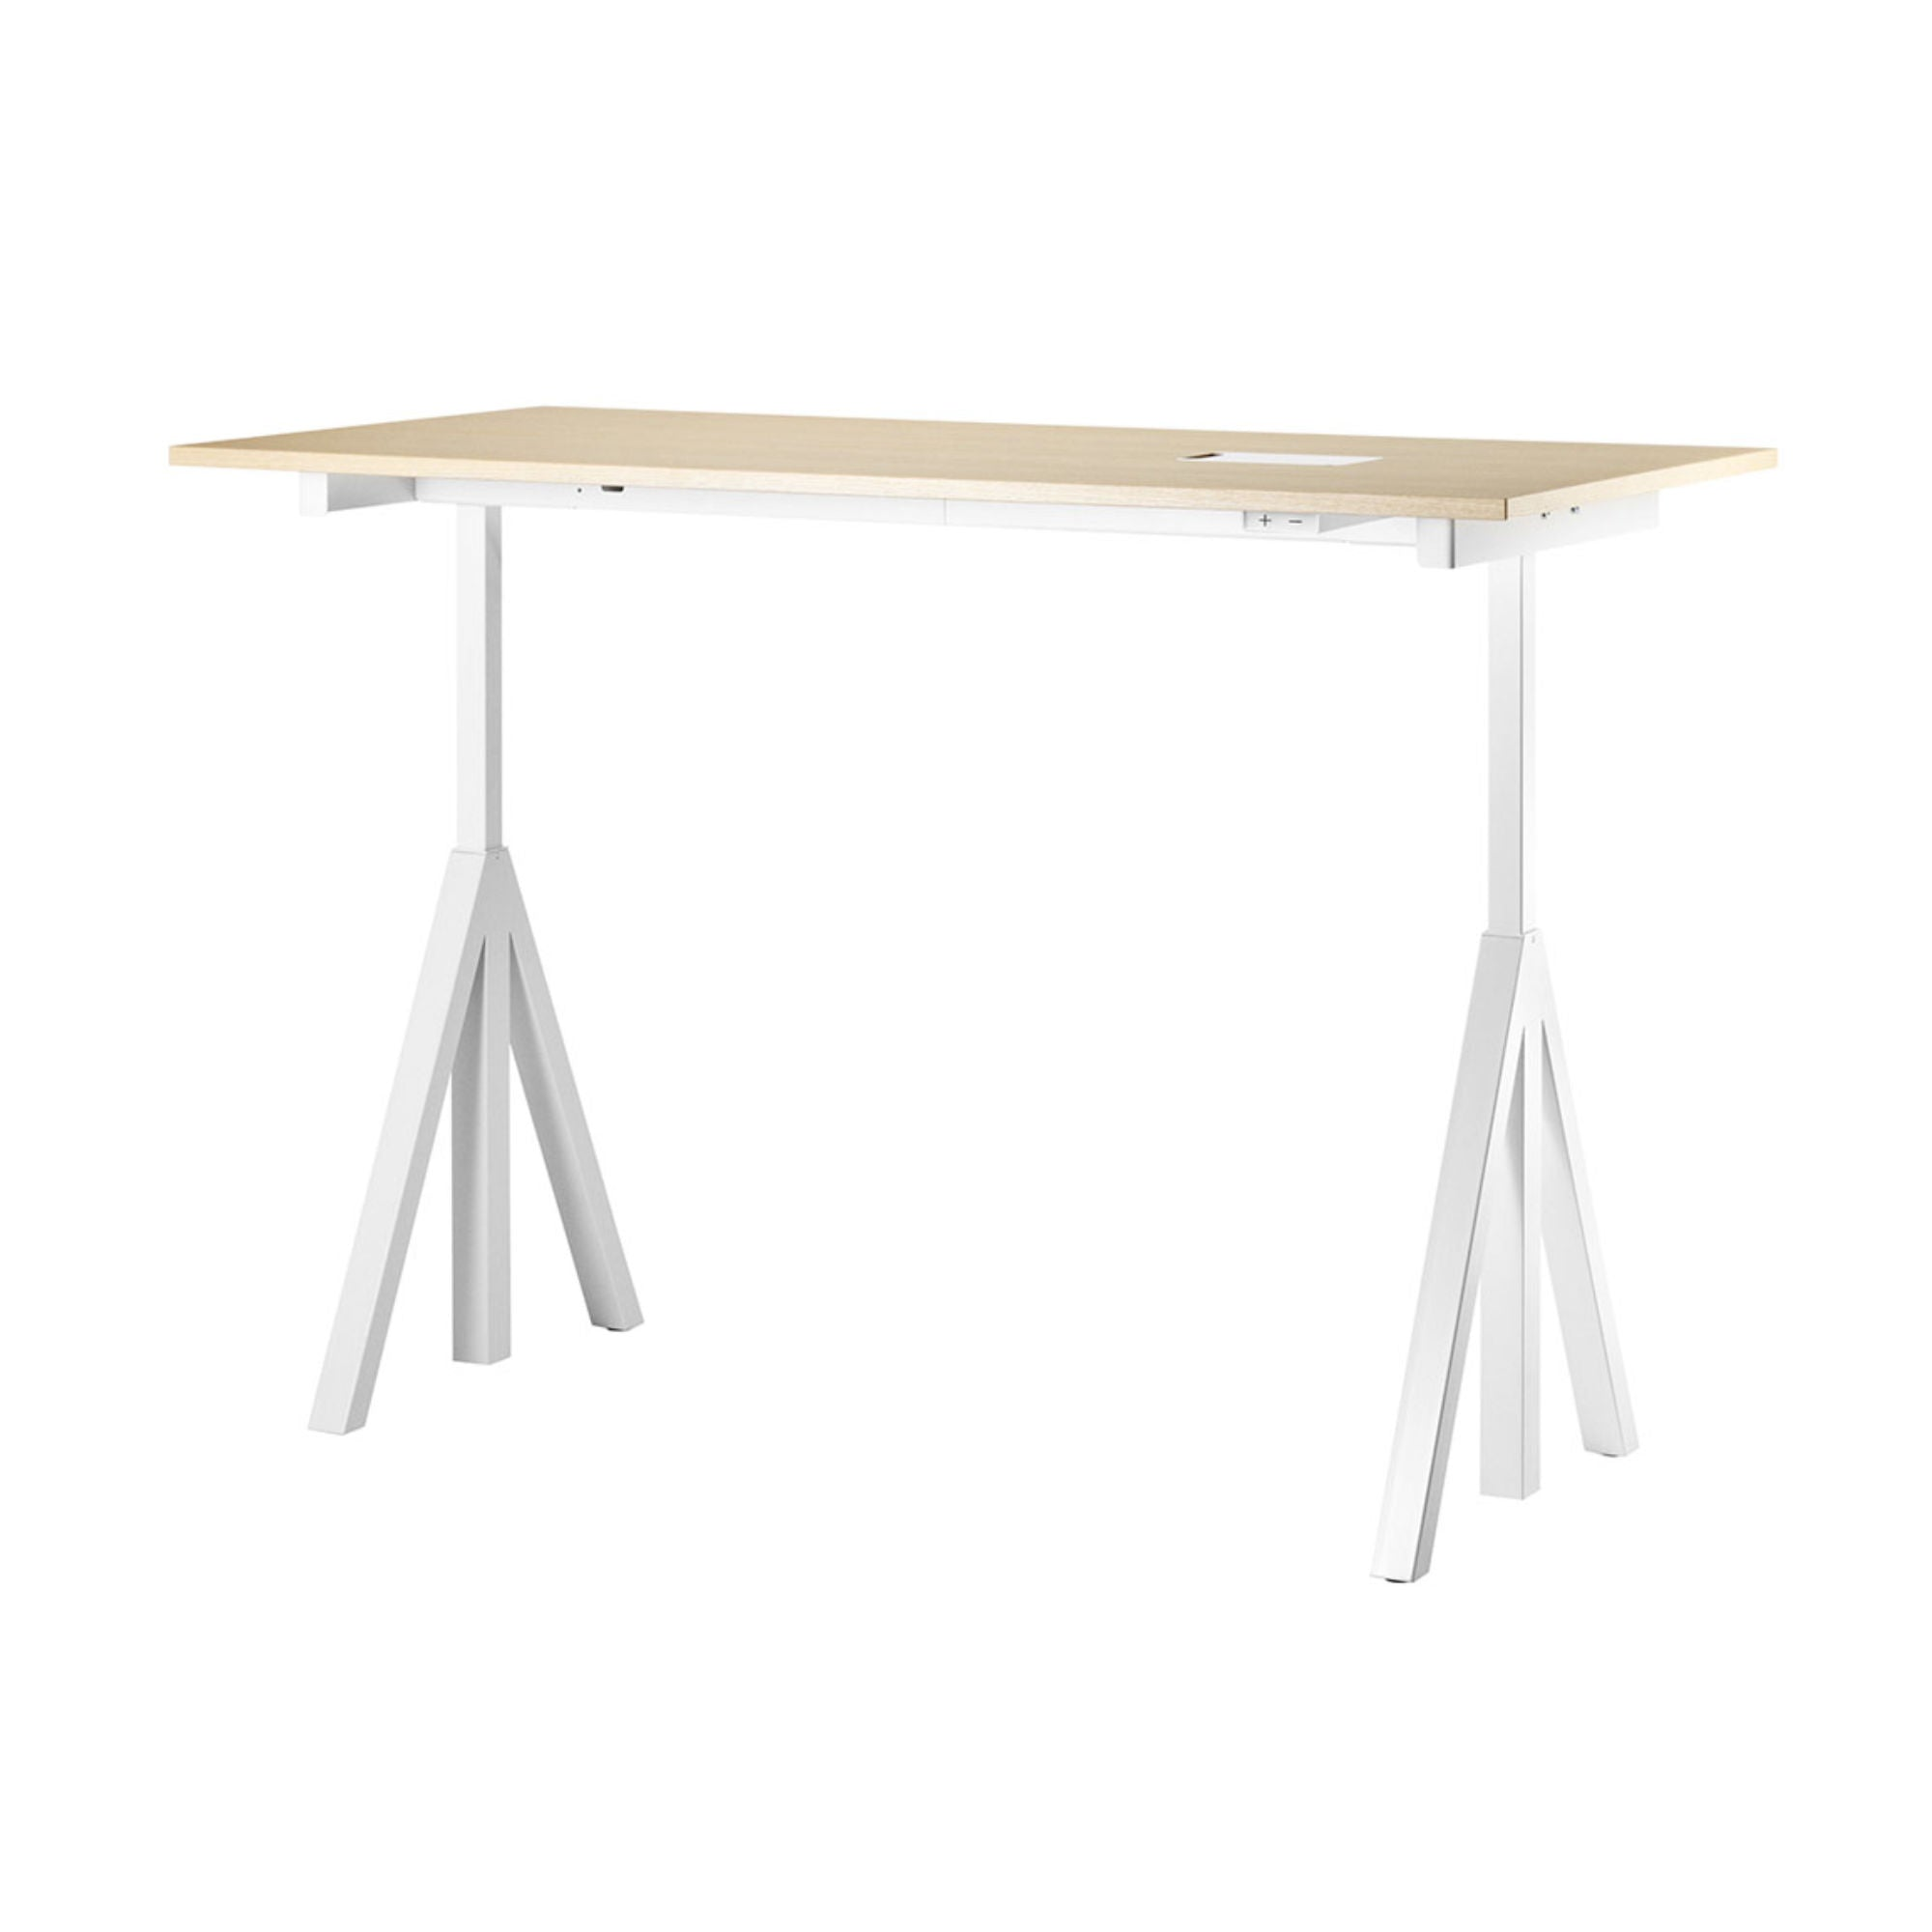 String Works™ Heigh-Adjustable Desk, Ash (120x78 cm)